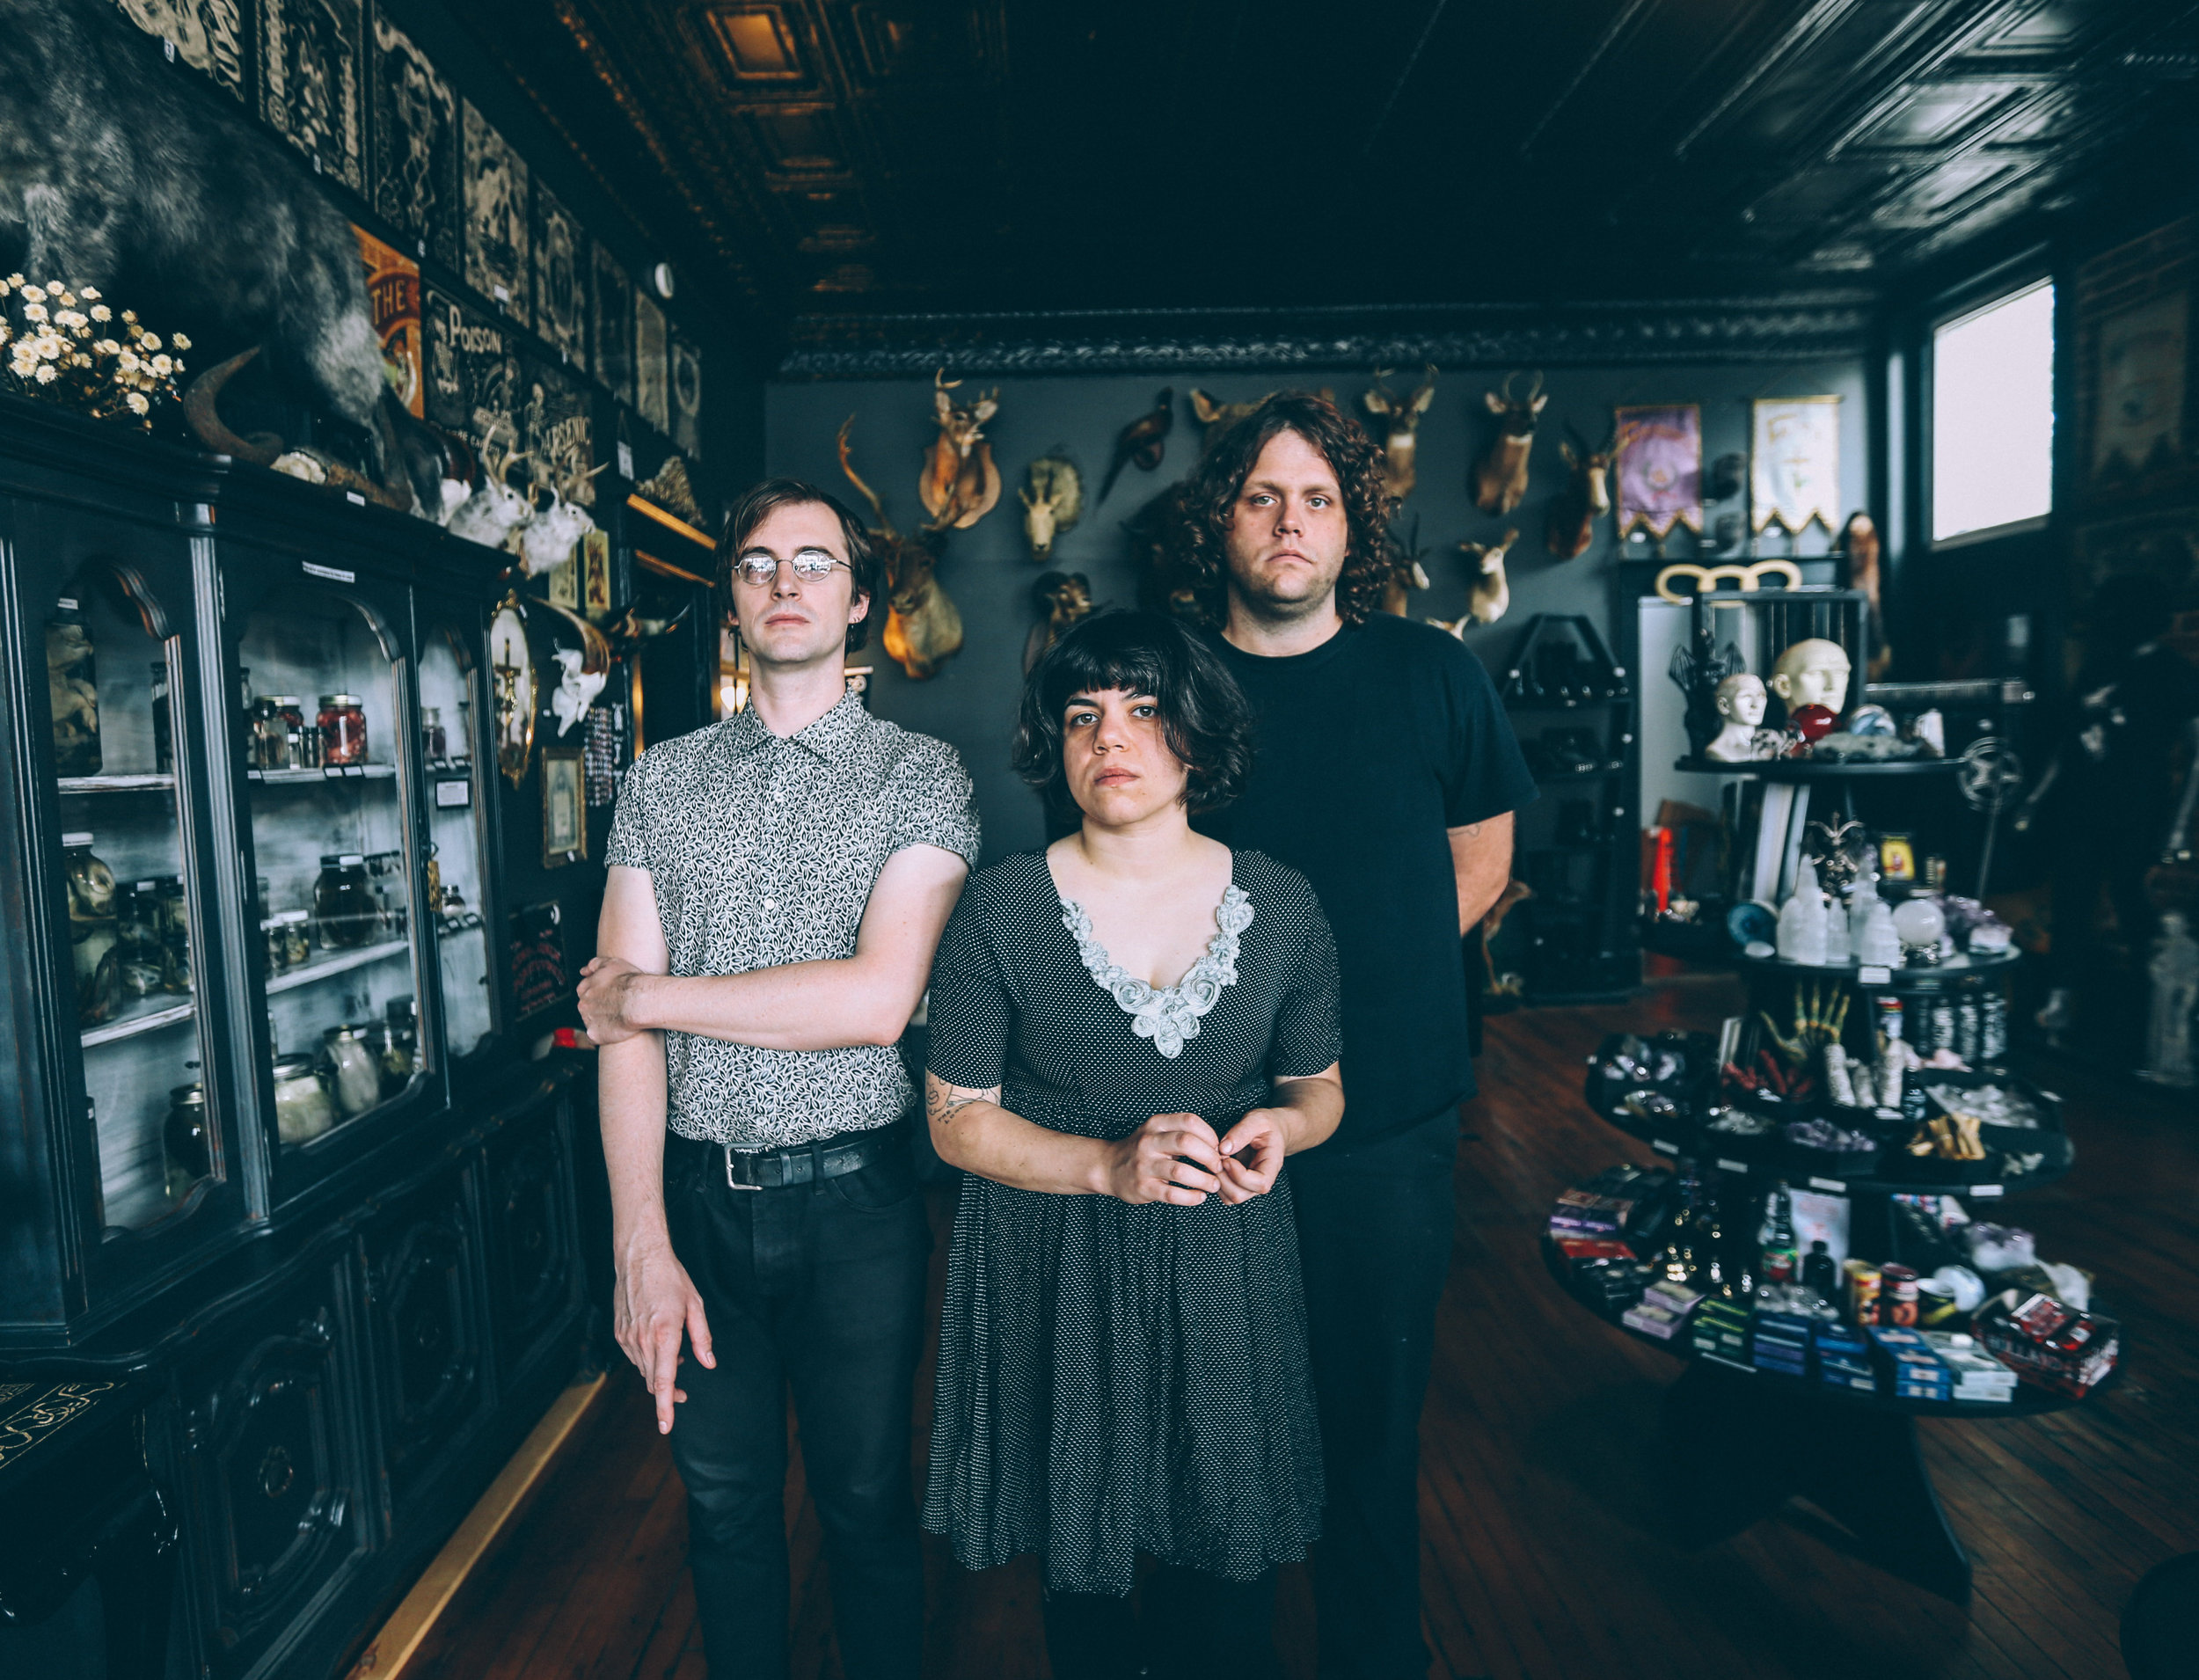 screaming females - Formed in New Brunswick, NJ in 2005, Screaming Females is Marissa Paternoster (guitar, vox), Mike Abbate (bass), and Jarrett Dougherty (drums). Over six albums and more than a decade of music making, the band has remained deeply individual and steadfastly DIY. They have also grown into one of the most dynamic and devastating touring bands going today.Out February 23rd, All At Once is the trio's most expansive and imaginative works to date--a double LP that swings between surreal miniatures and solo-heavy sprawl. Concision takes a backseat to experimentation, with arrangements meant to evoke the energy and spontaneity of their live shows. It's music built across a timeline that's longer than our internet-enhanced moment typically tolerates and a testament to the band's dedication and perseverance.Homebase: New Brunswick, New JerseyLabel: Don Giovanni RecordsFor avails and/or offers, contact:  Brian@WIREDtourbooking.com